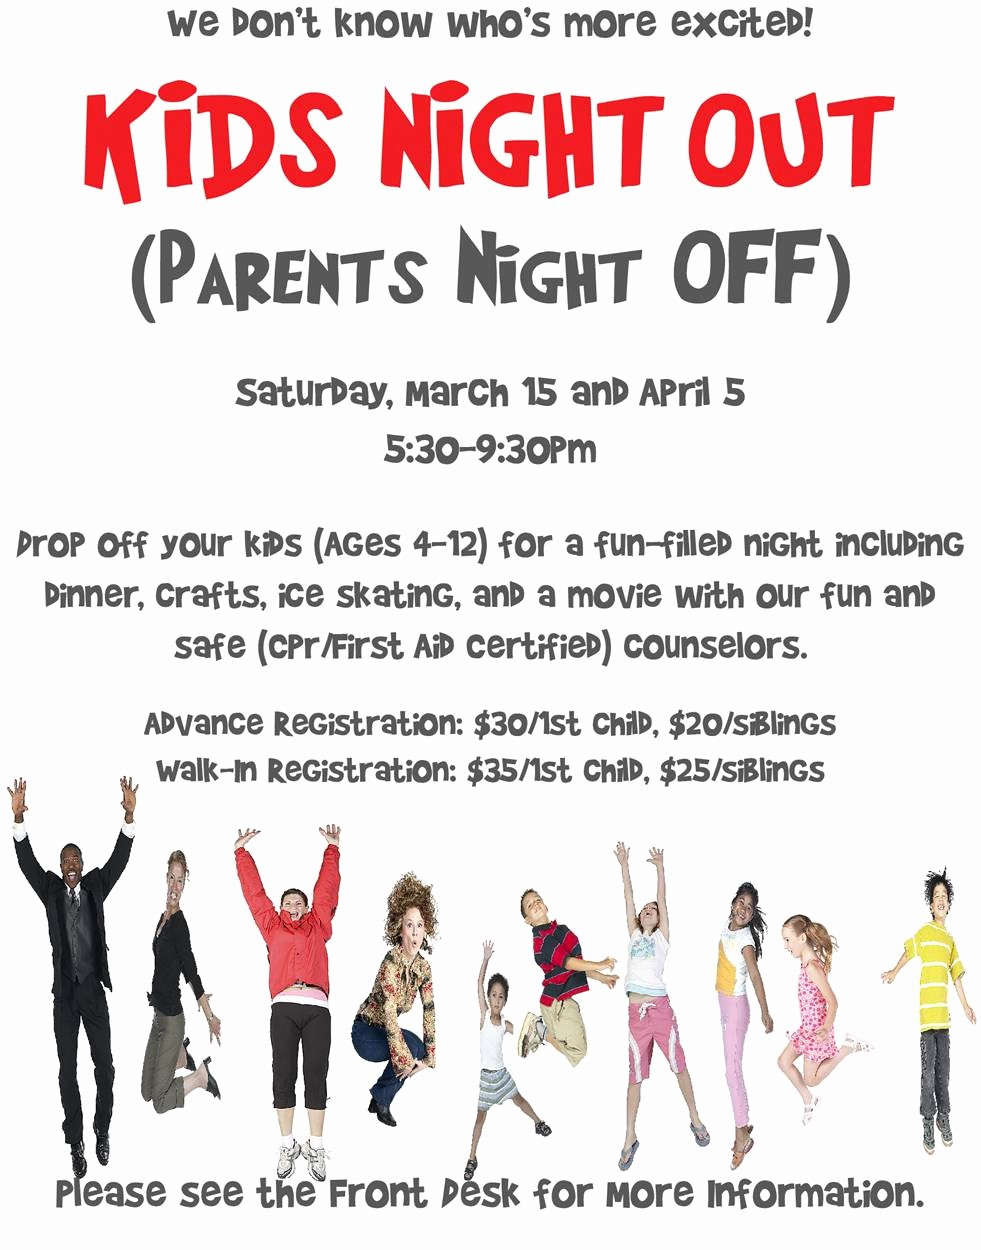 Parent Night Out Flyer Template Best Of Parents Night Out Flyer Template